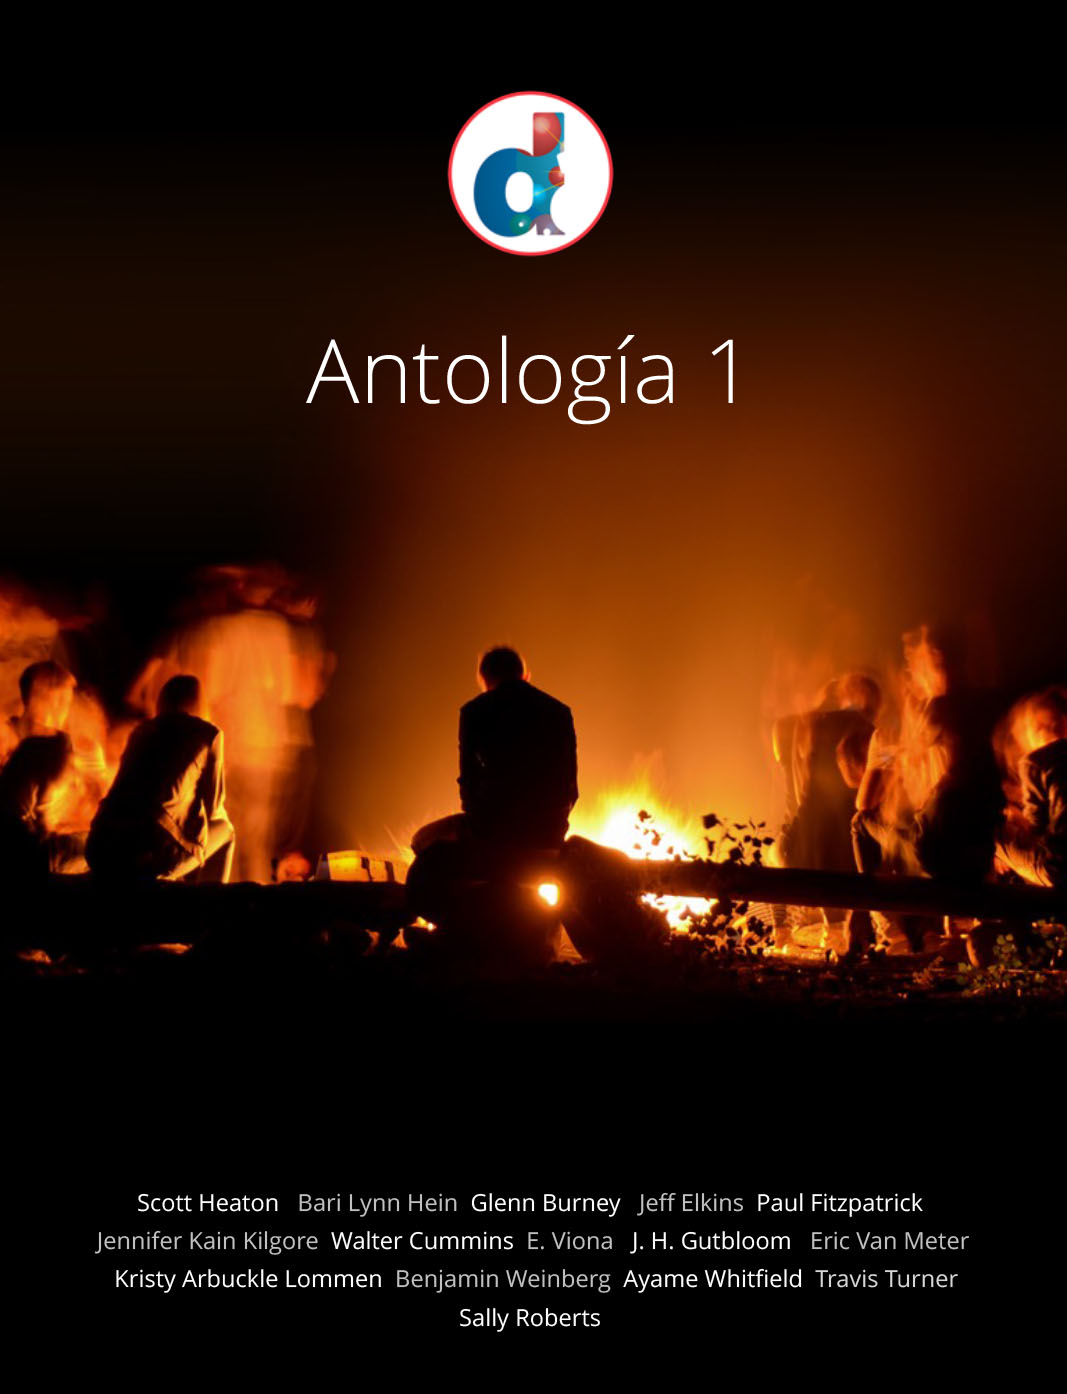 Antologia 1 - Spanish translation - daCunha.global short story collection